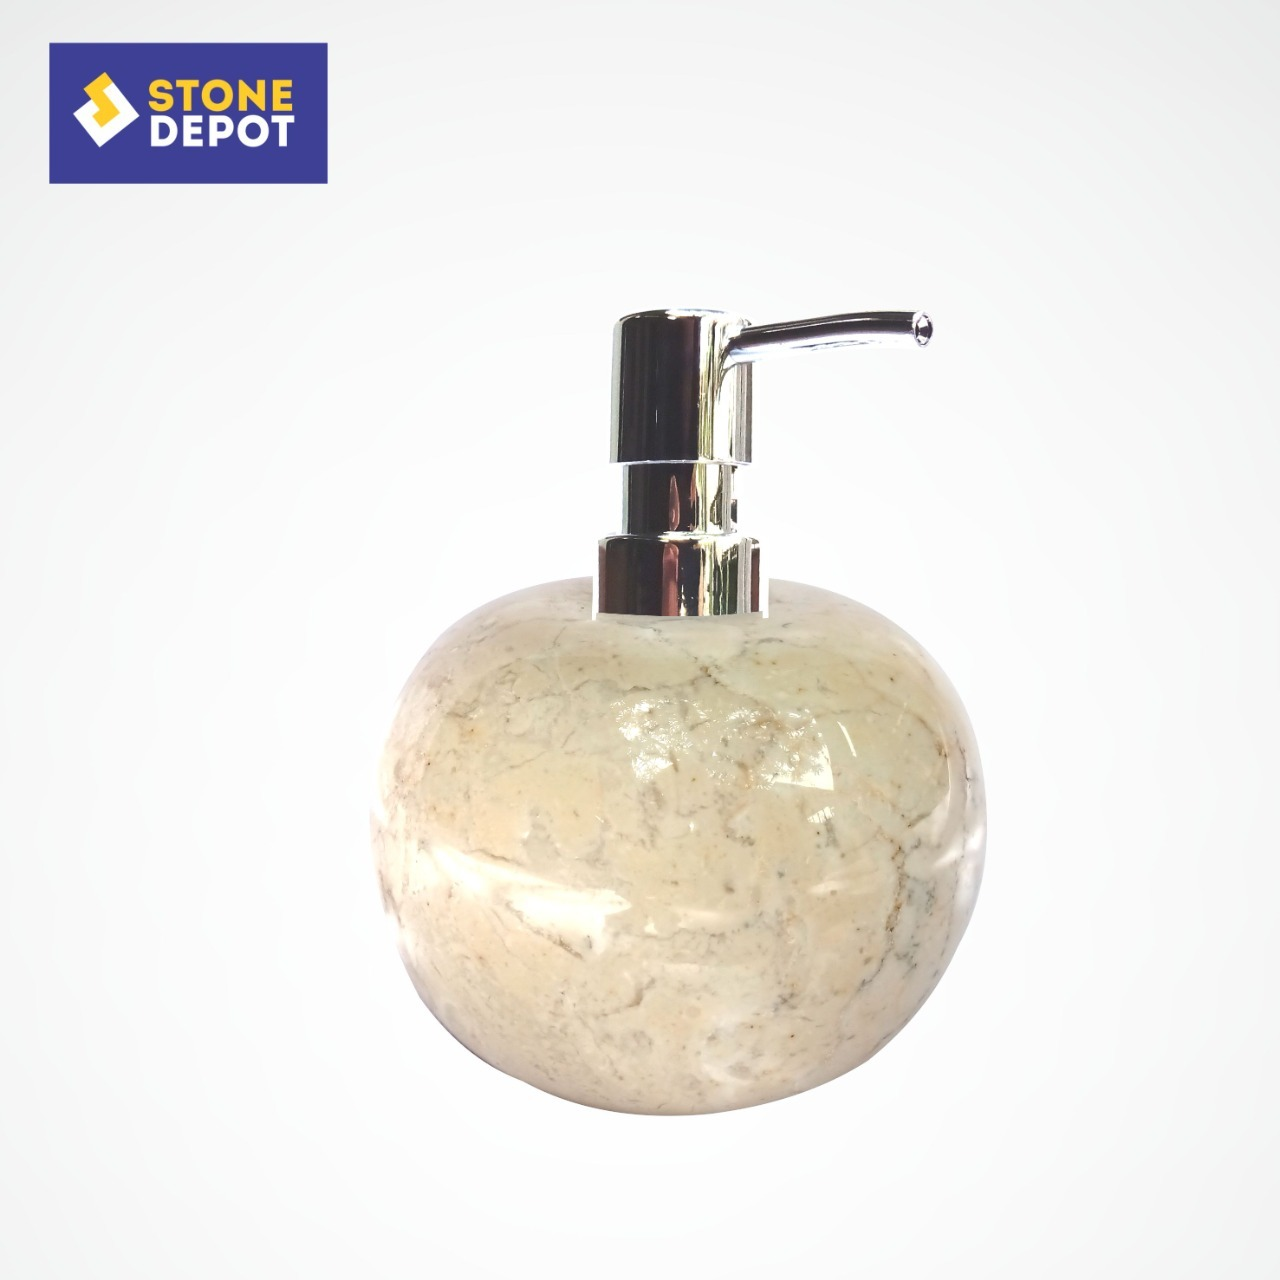 Bali Beige Marble Bathroom Stone Soap Dispenser